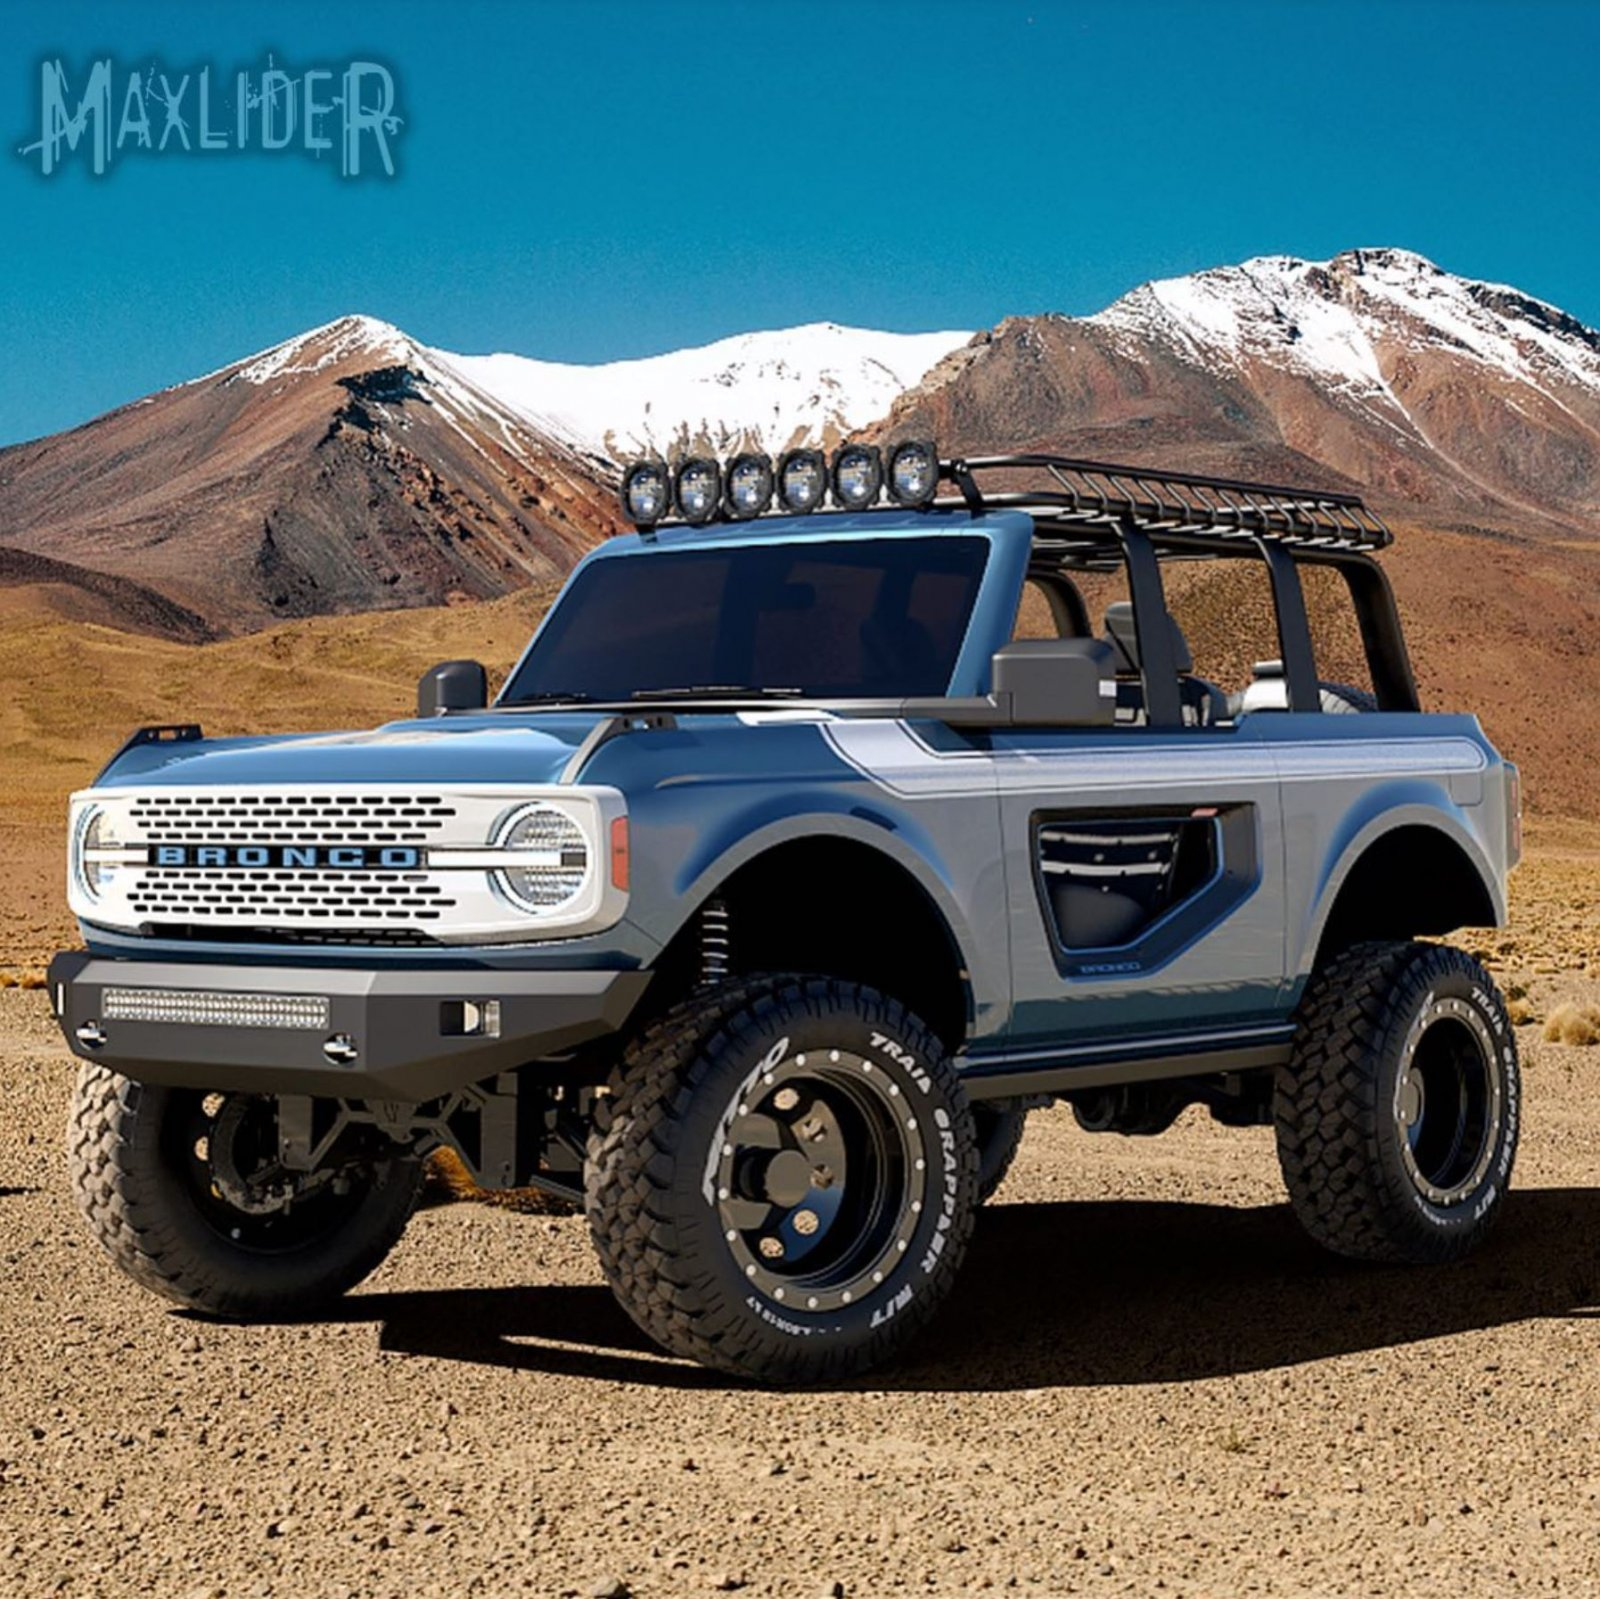 2021 Ford Bronco Clydesdale 2 Door By Maxlider Motors.JPG